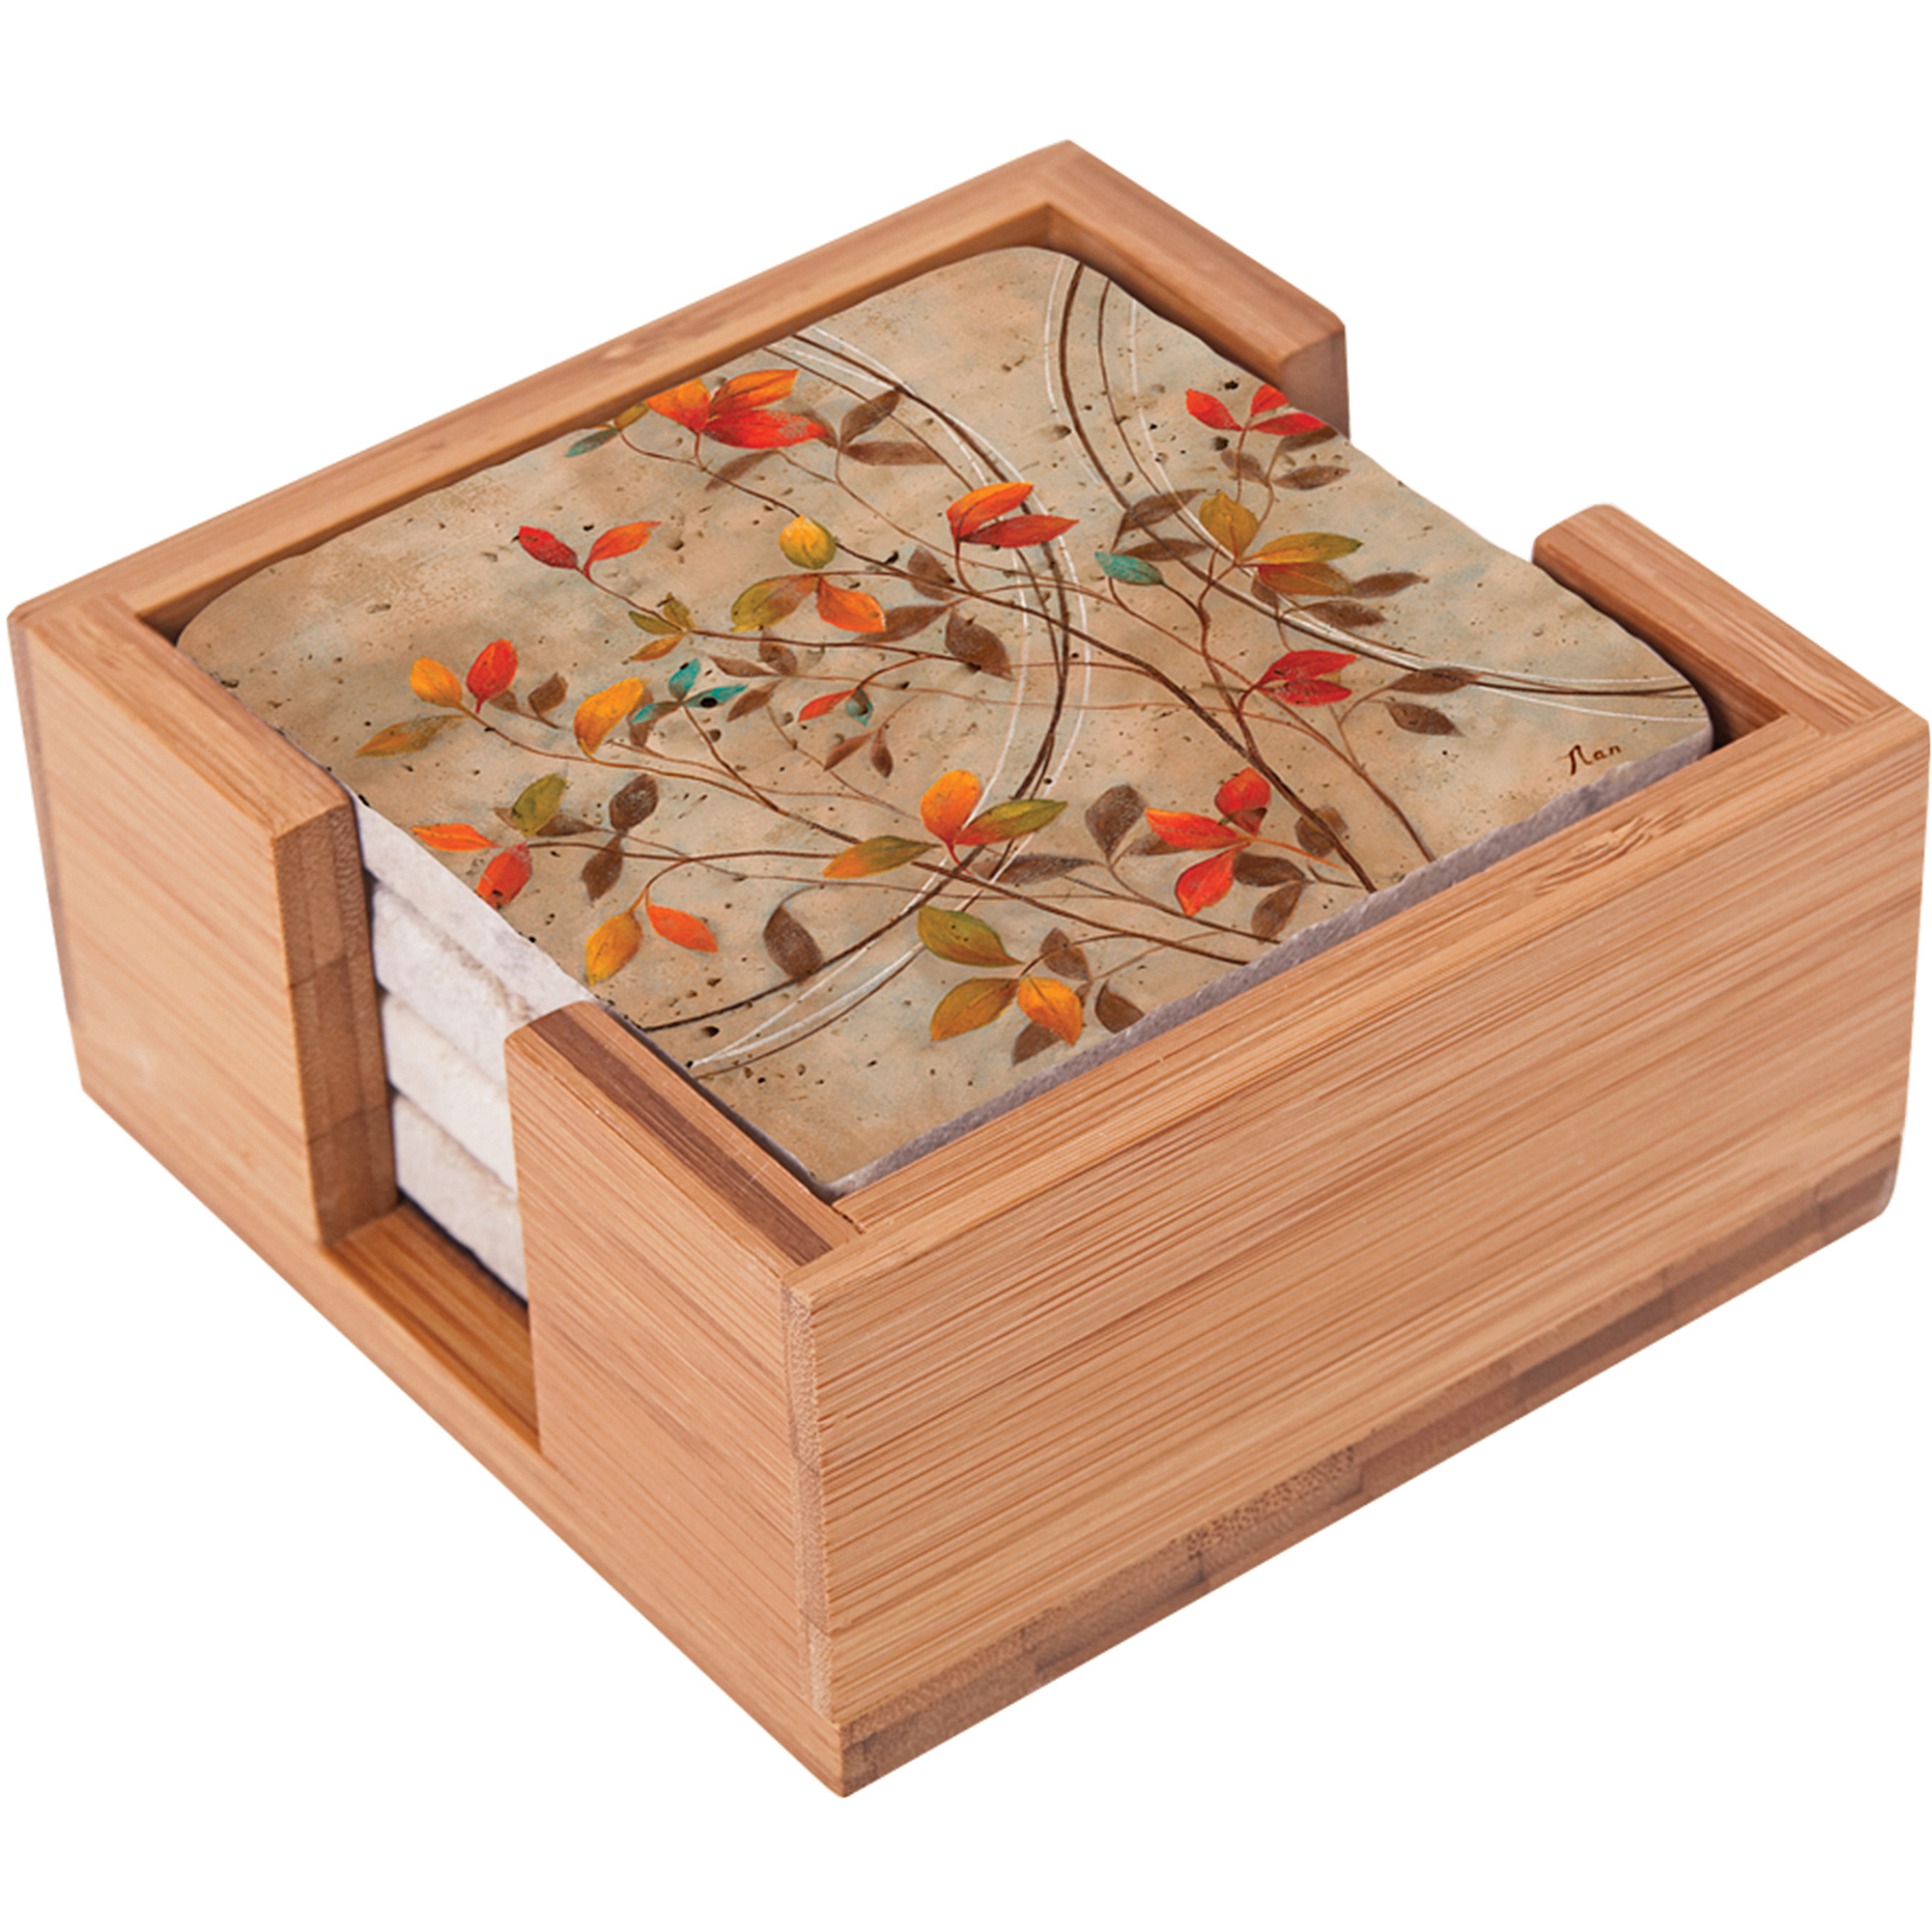 coasters  walmartcom - thirstystone impressions square bamboo holder for travertine  thirstystoneimpressions drink coasters